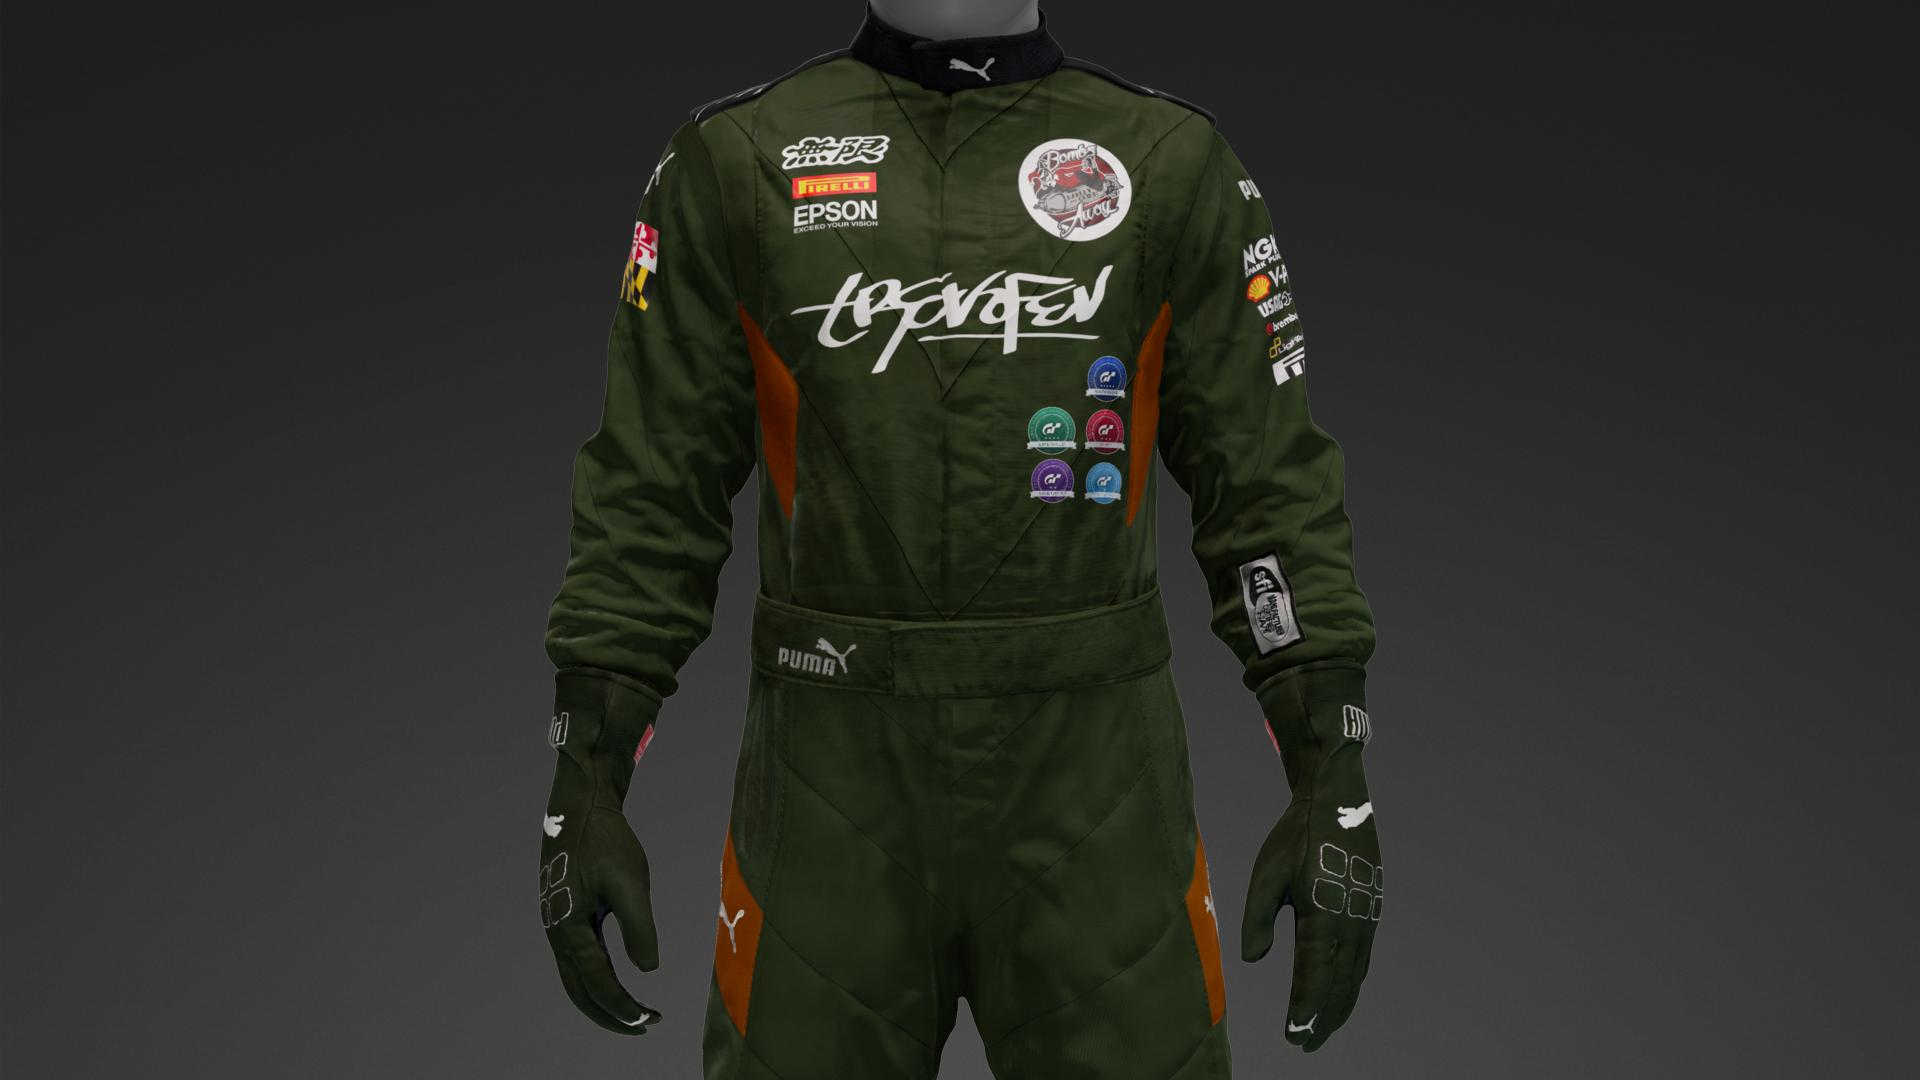 Racing suit. Inspired by fighter jet pilot suit.